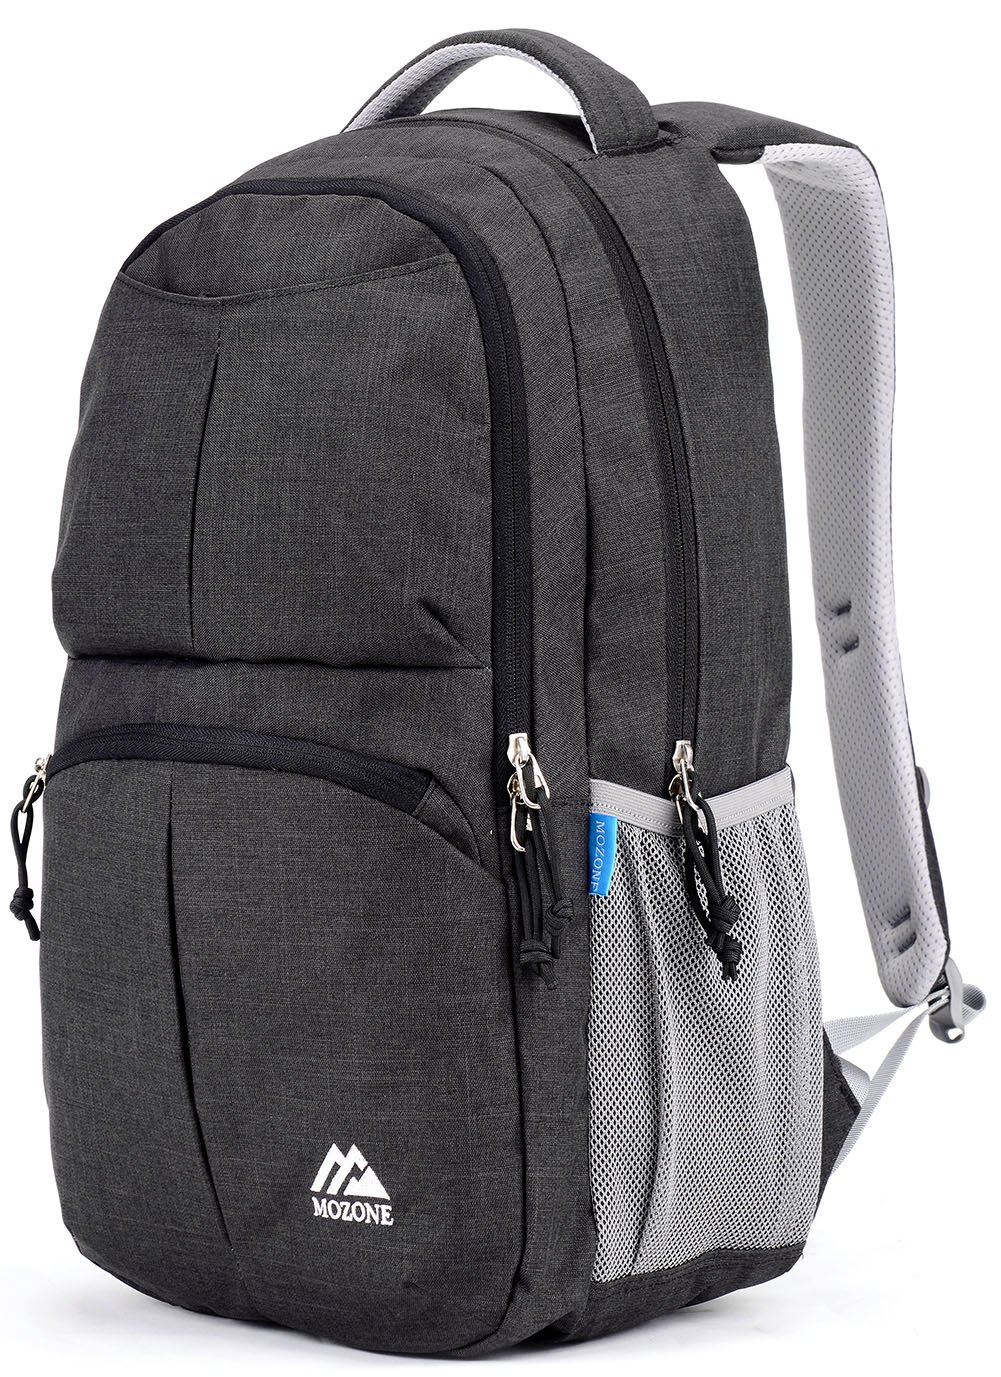 Mozone Large Lightweight Water Resistant College School Laptop Backpack Travel Bag Grey M4011L-Grey